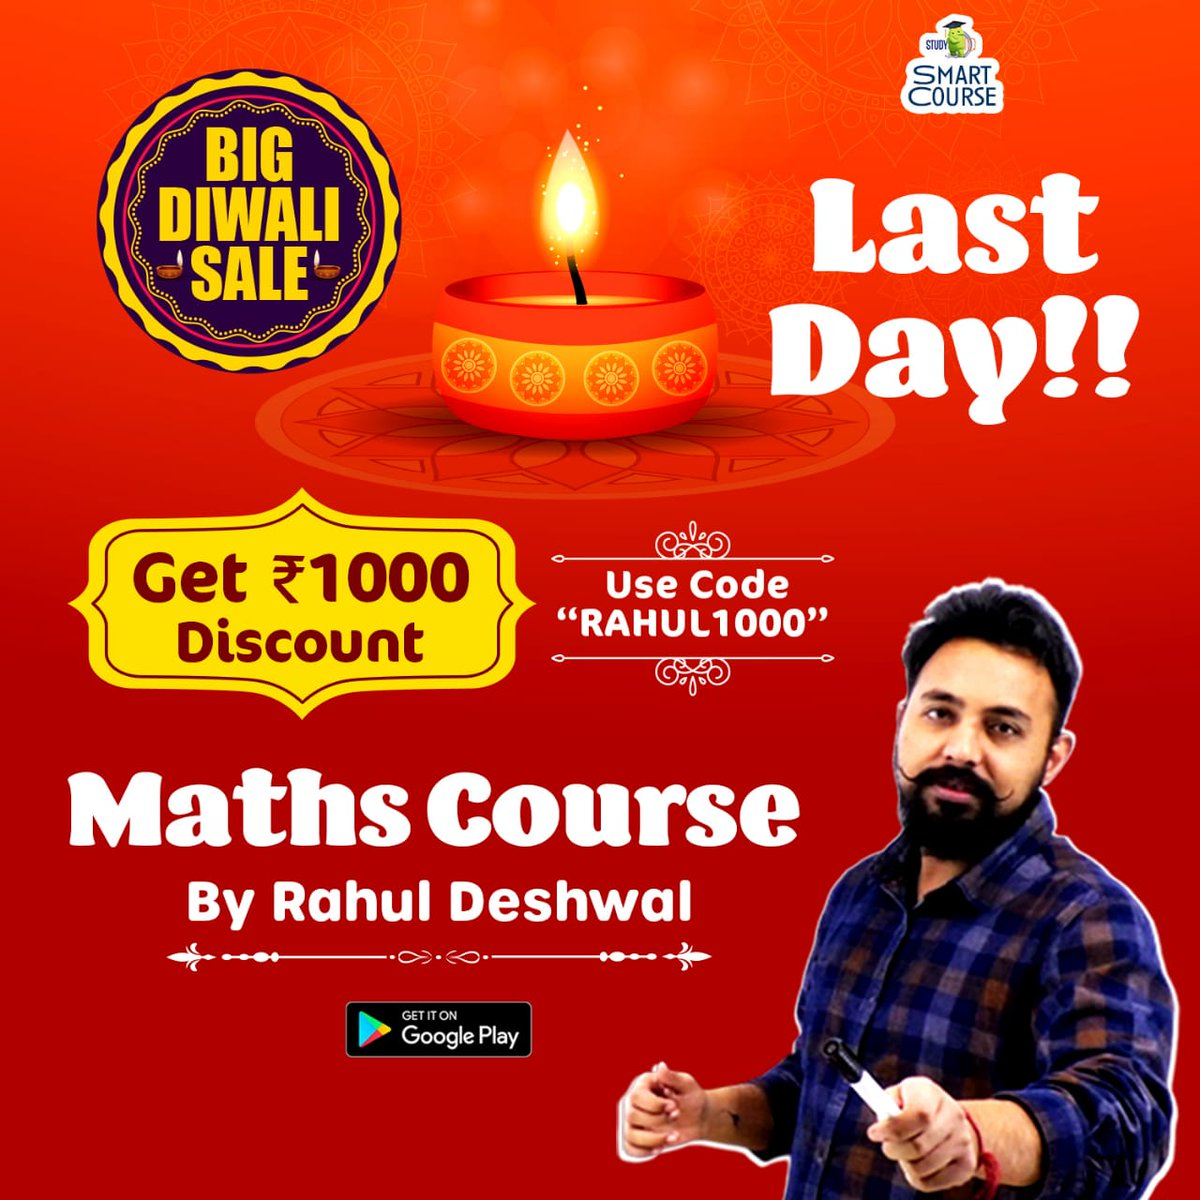 "#BigDiwaliSale! #Maths Smart Course by Rahul Deshwal with various smart features and also get Flat Rs1000 discount, use code ""RAHUL1000"", offer valid for TODAY only. To know more, Download StudyIQ APP:"